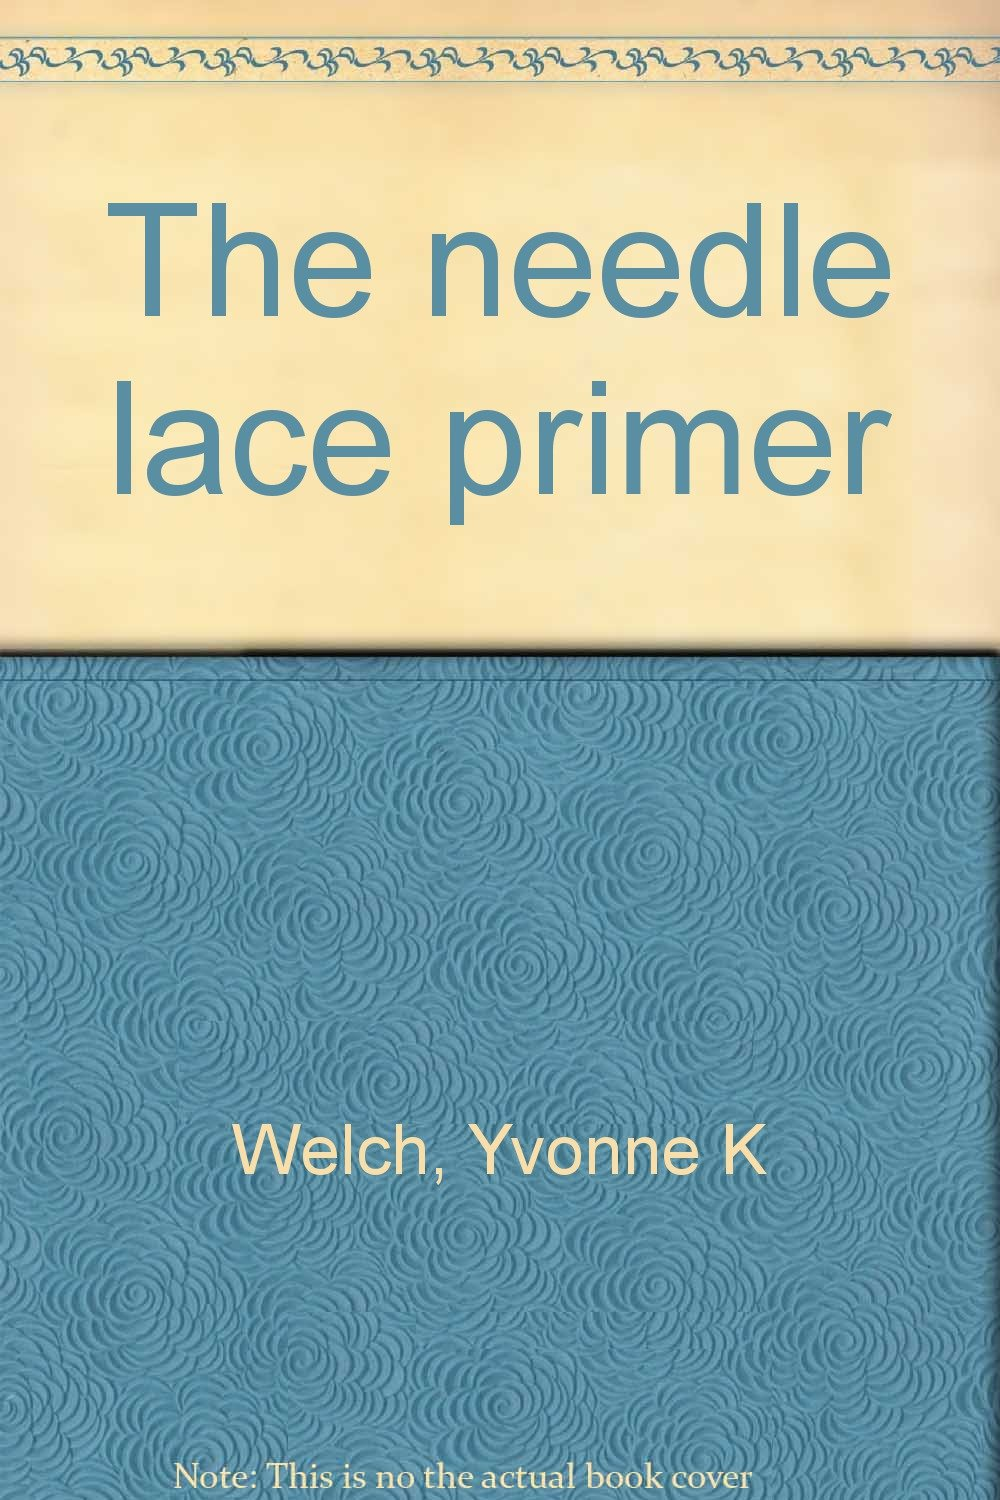 The needle lace primer